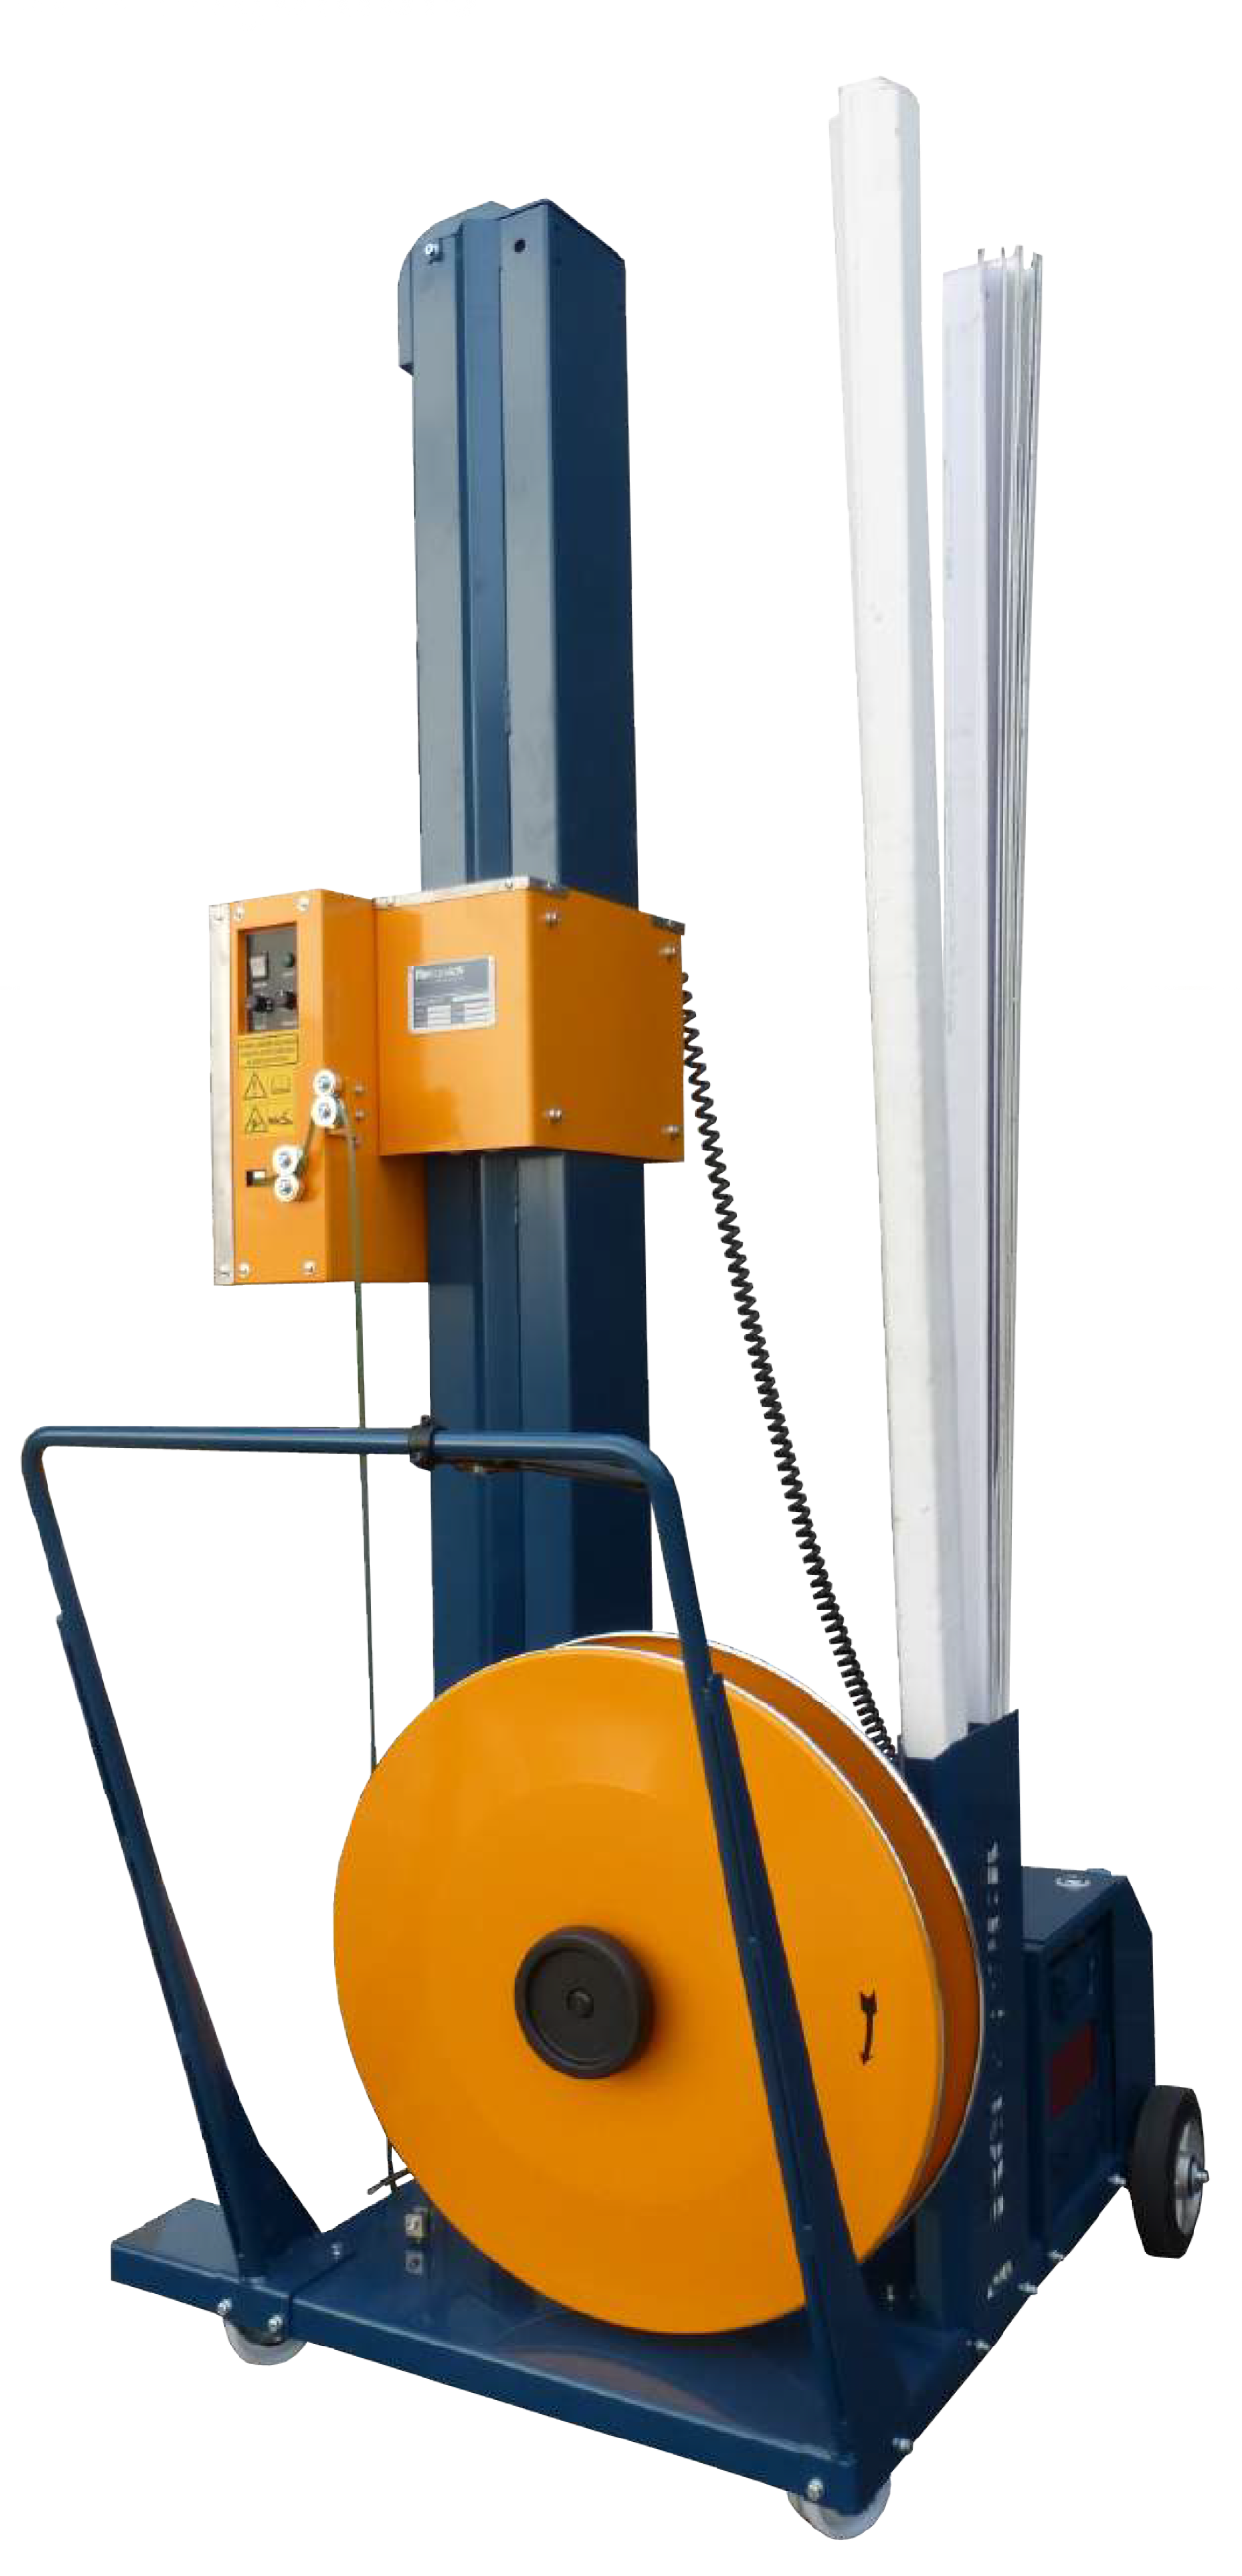 A piece of semi-automatic Strapping Equipment that is on a rolling platform so it can be moved from strapping job to job.